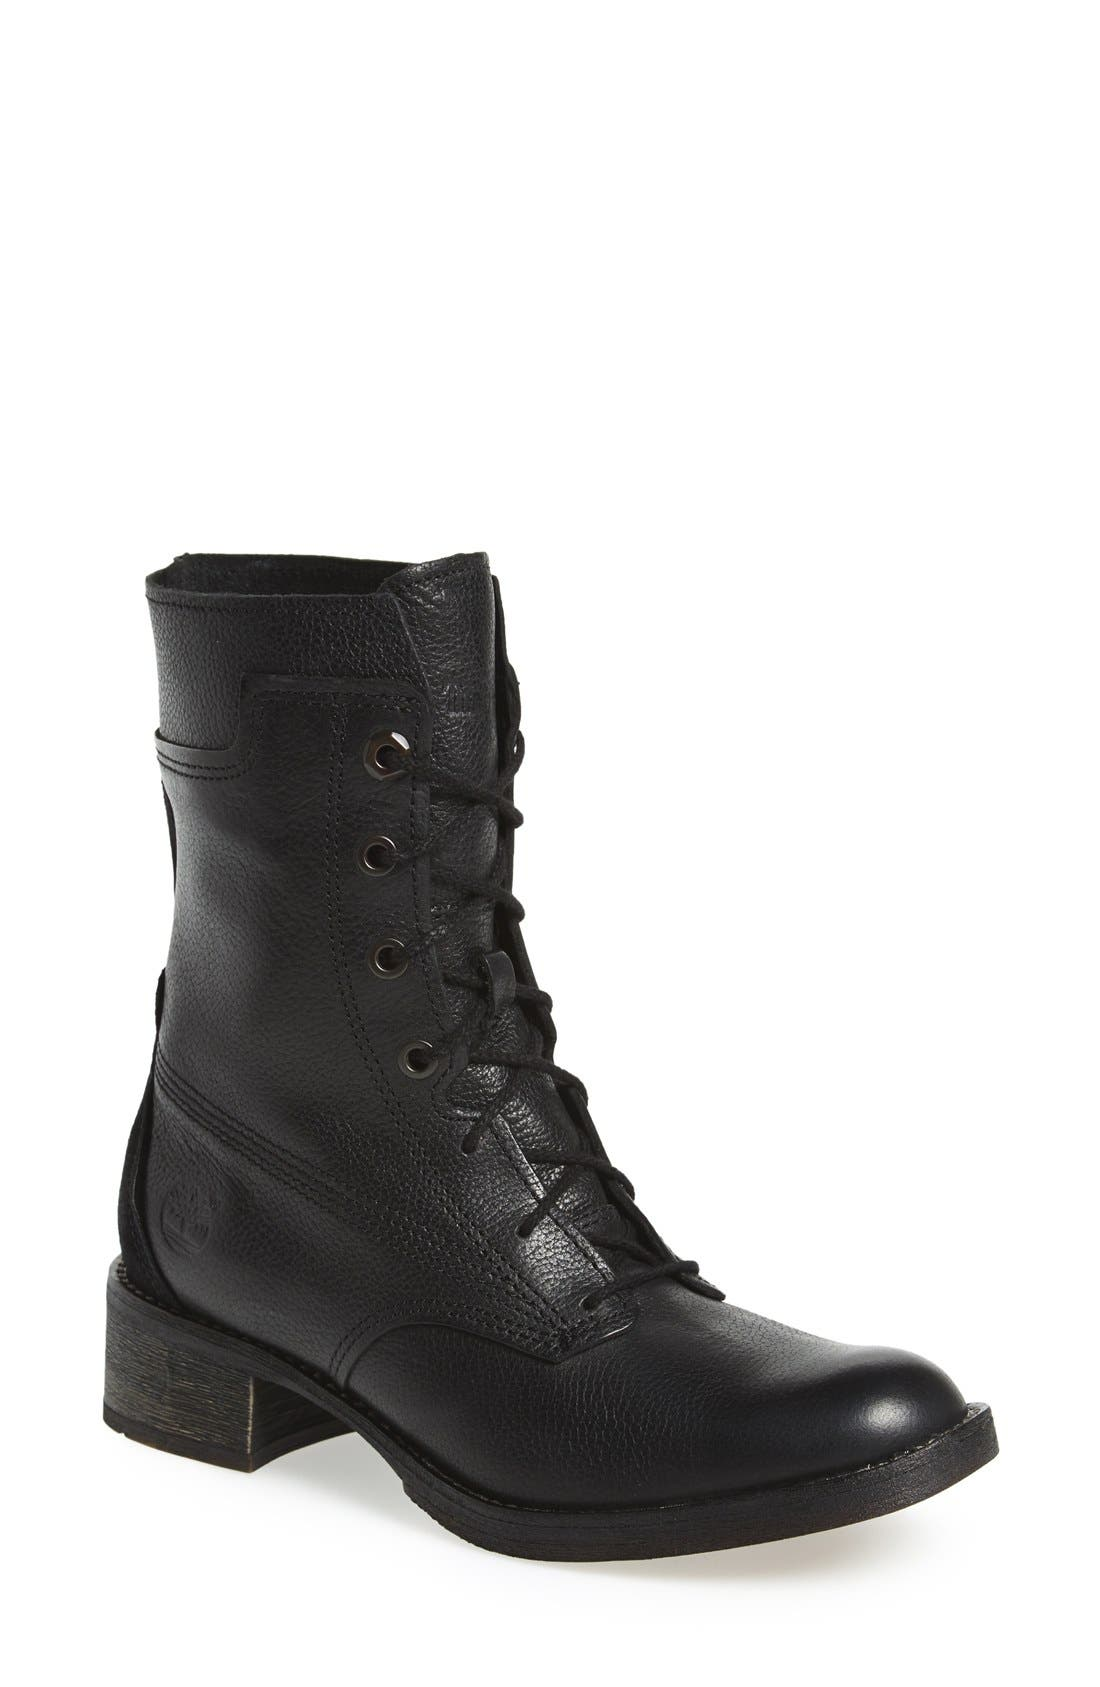 Alternate Image 1 Selected - Timberland Earthkeepers® 'Whittemore' Lace-Up Boot (Women)